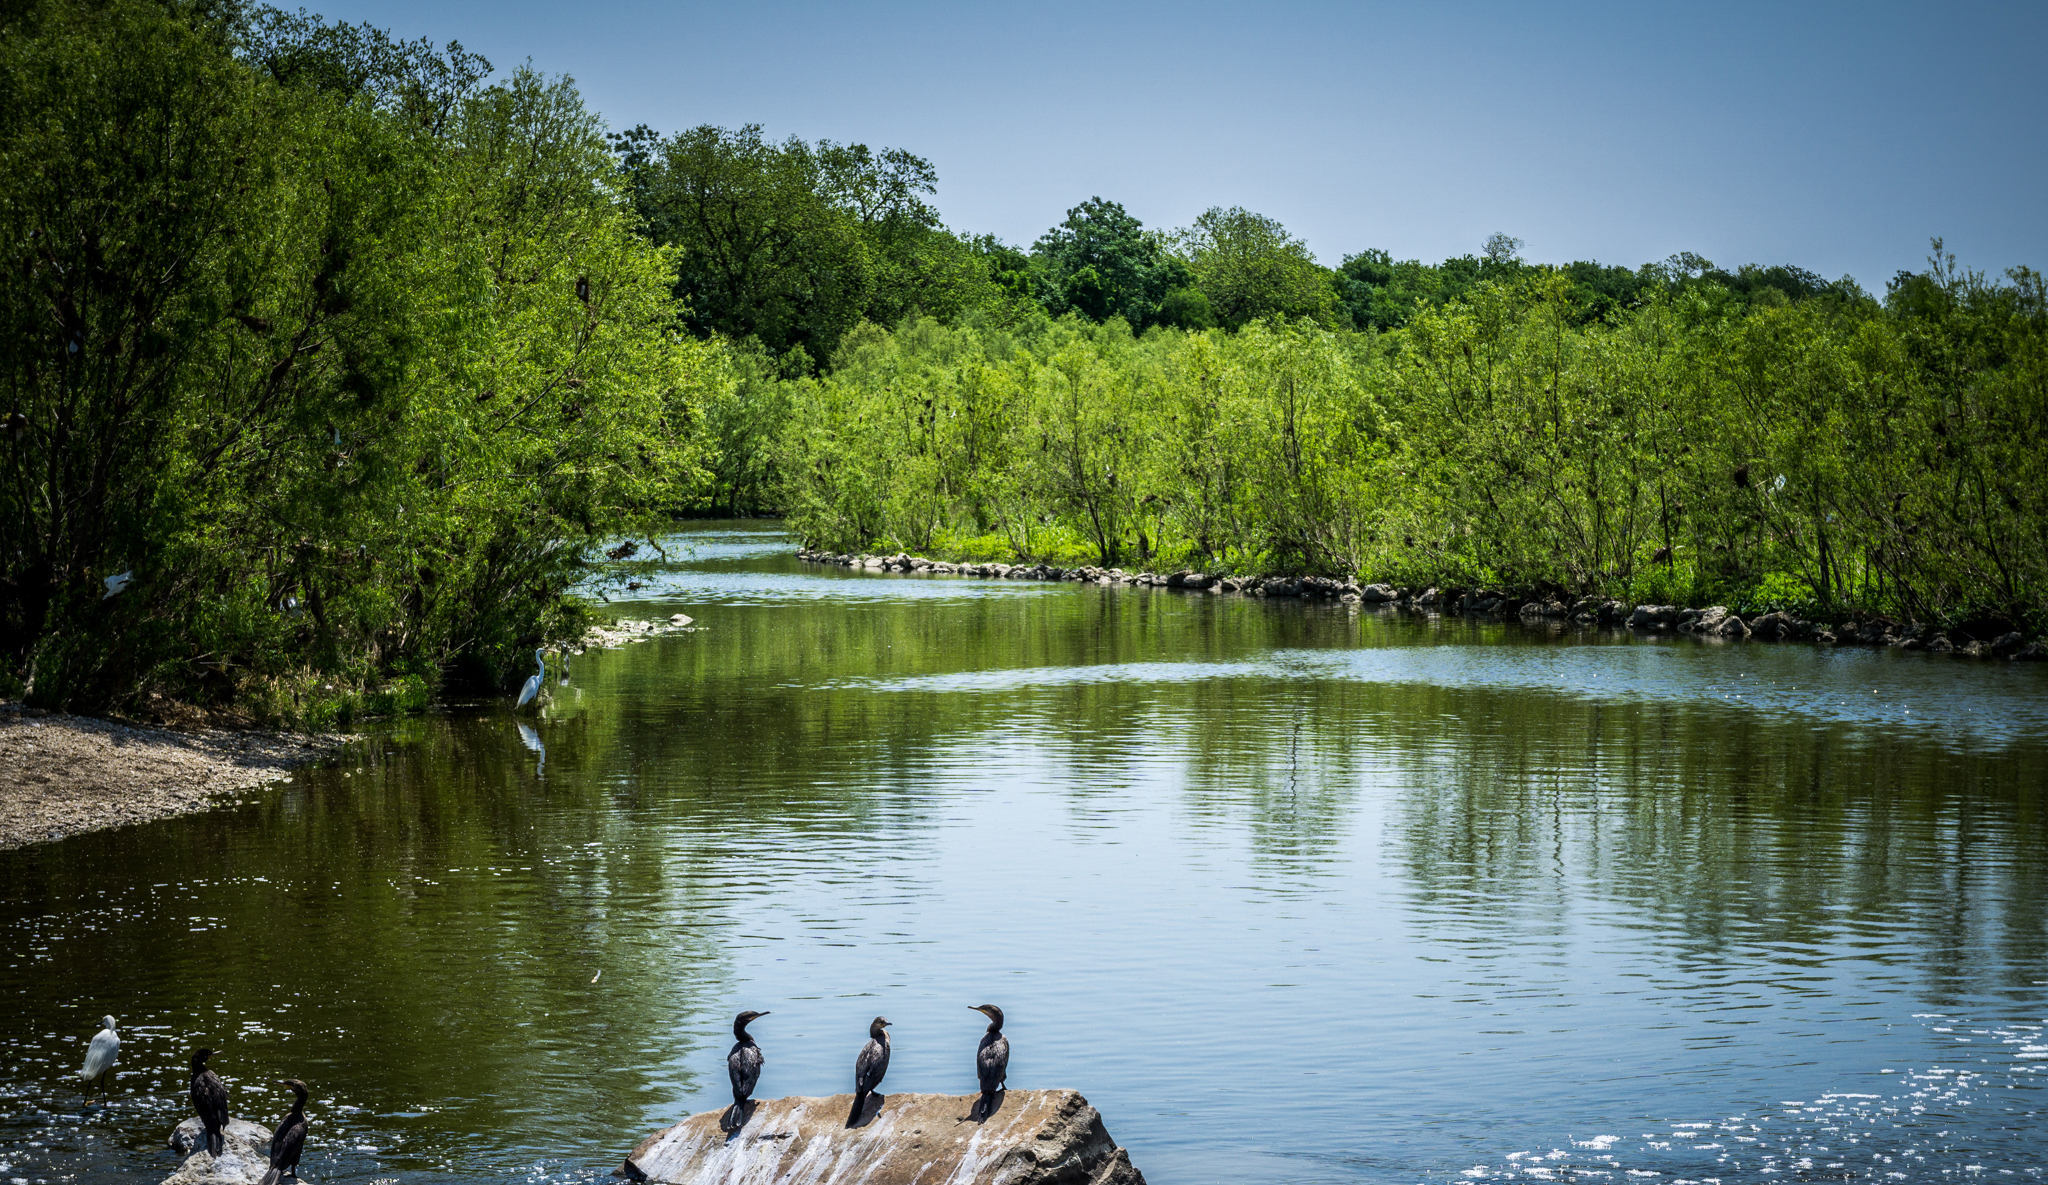 San Antonio River with birds on a rock outcropping